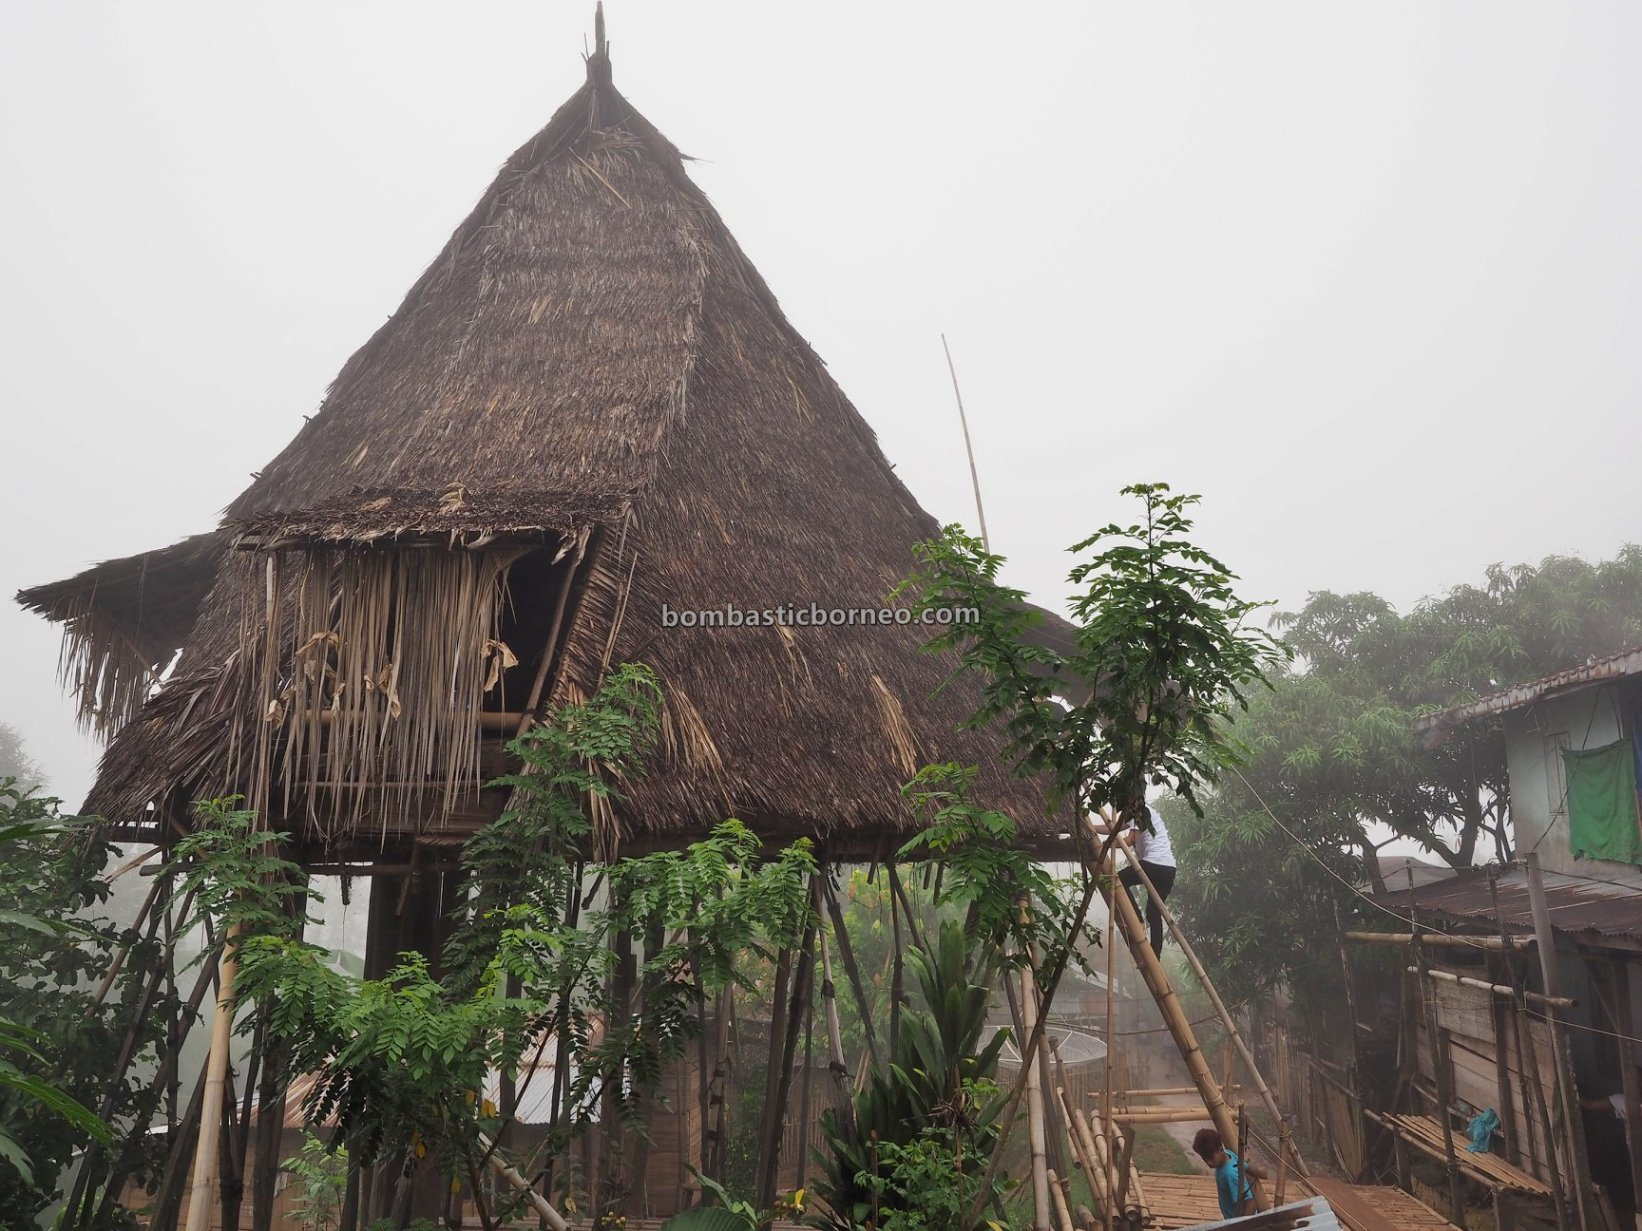 Traditional, village, culture, Gawai Dayak, Indonesia, Kalimantan Barat, native, tribe, Tourism, travel guide, Trans Borneo, Baruk, 探索婆罗洲游踪, 印尼西加里曼丹, 孟加映达雅部落